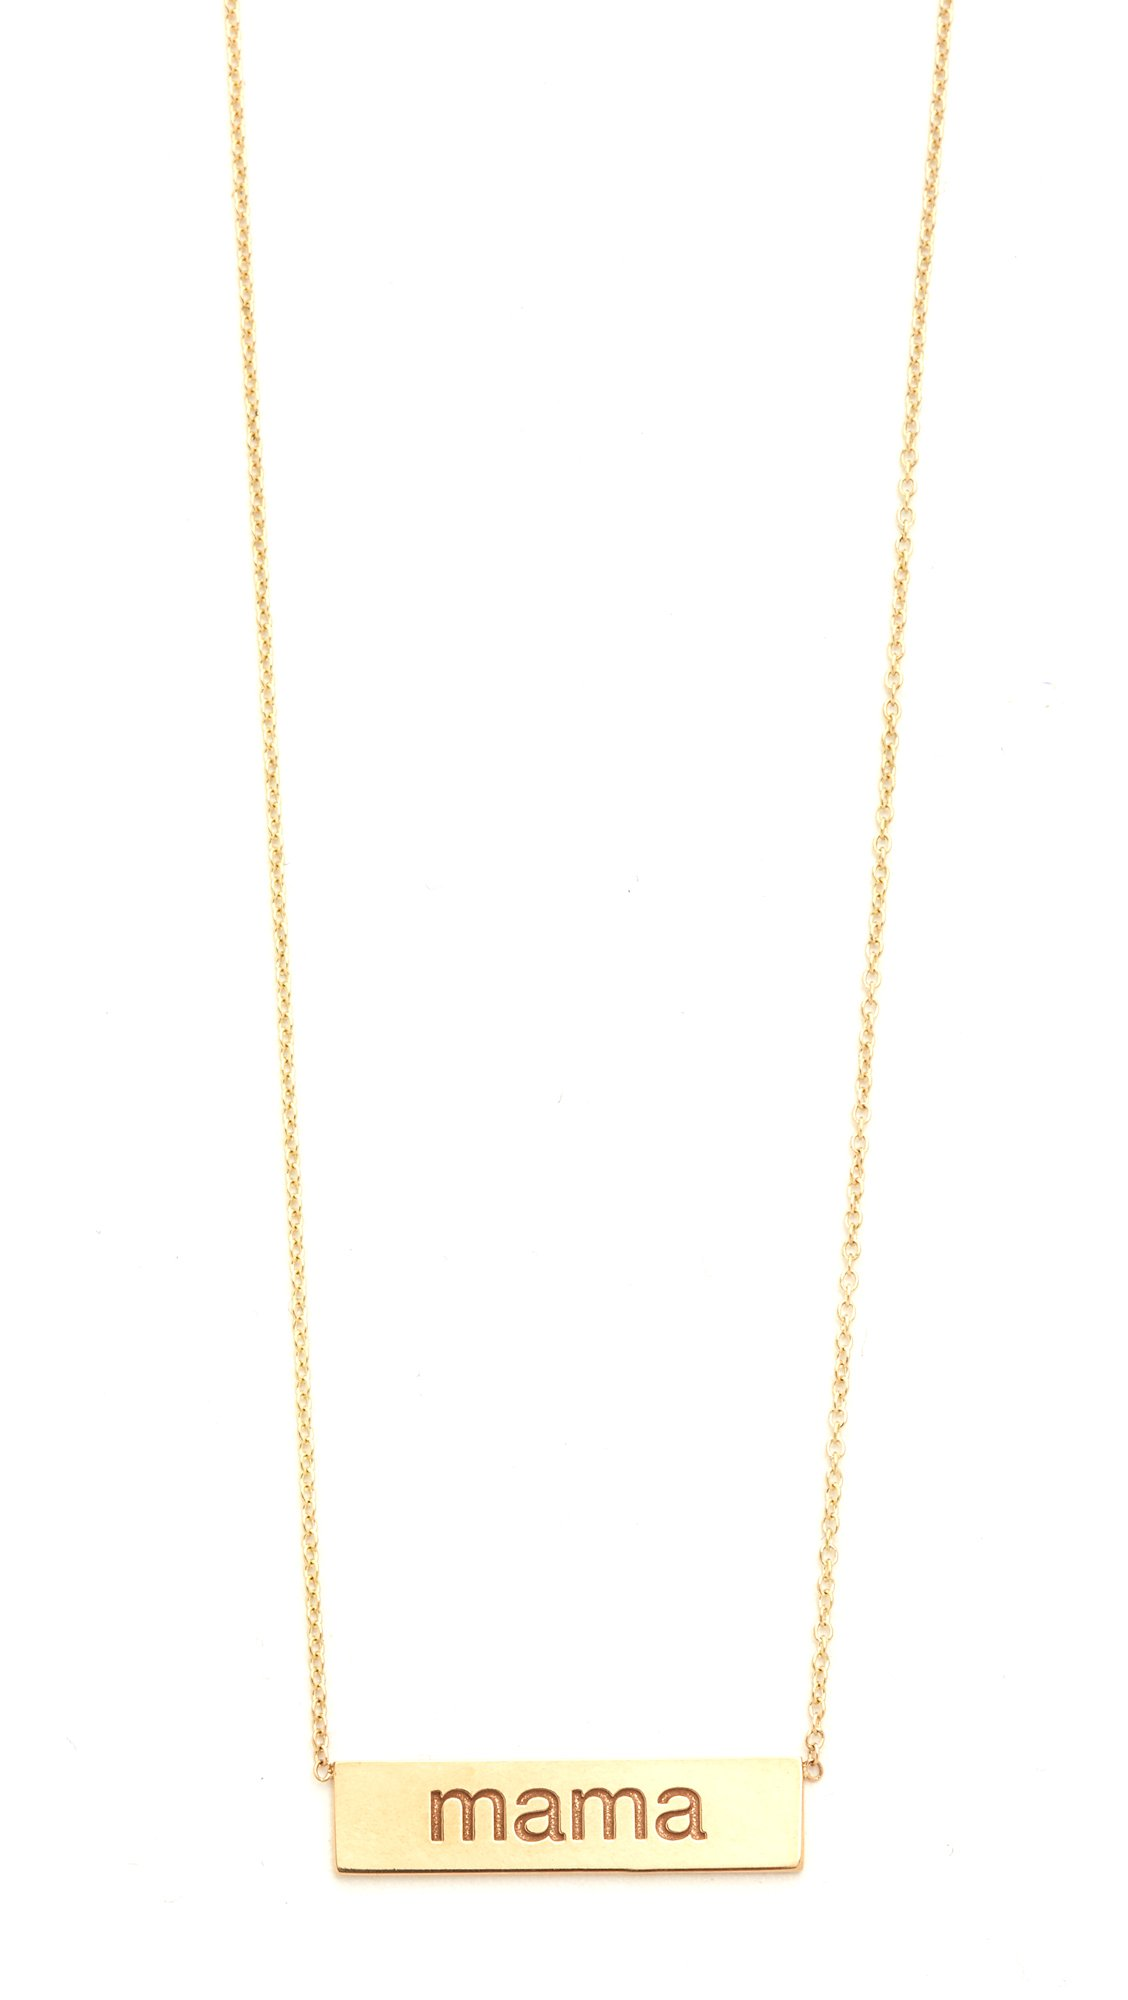 Zoe Chicco Women's 14k Gold Mama Necklace, Gold, One Size